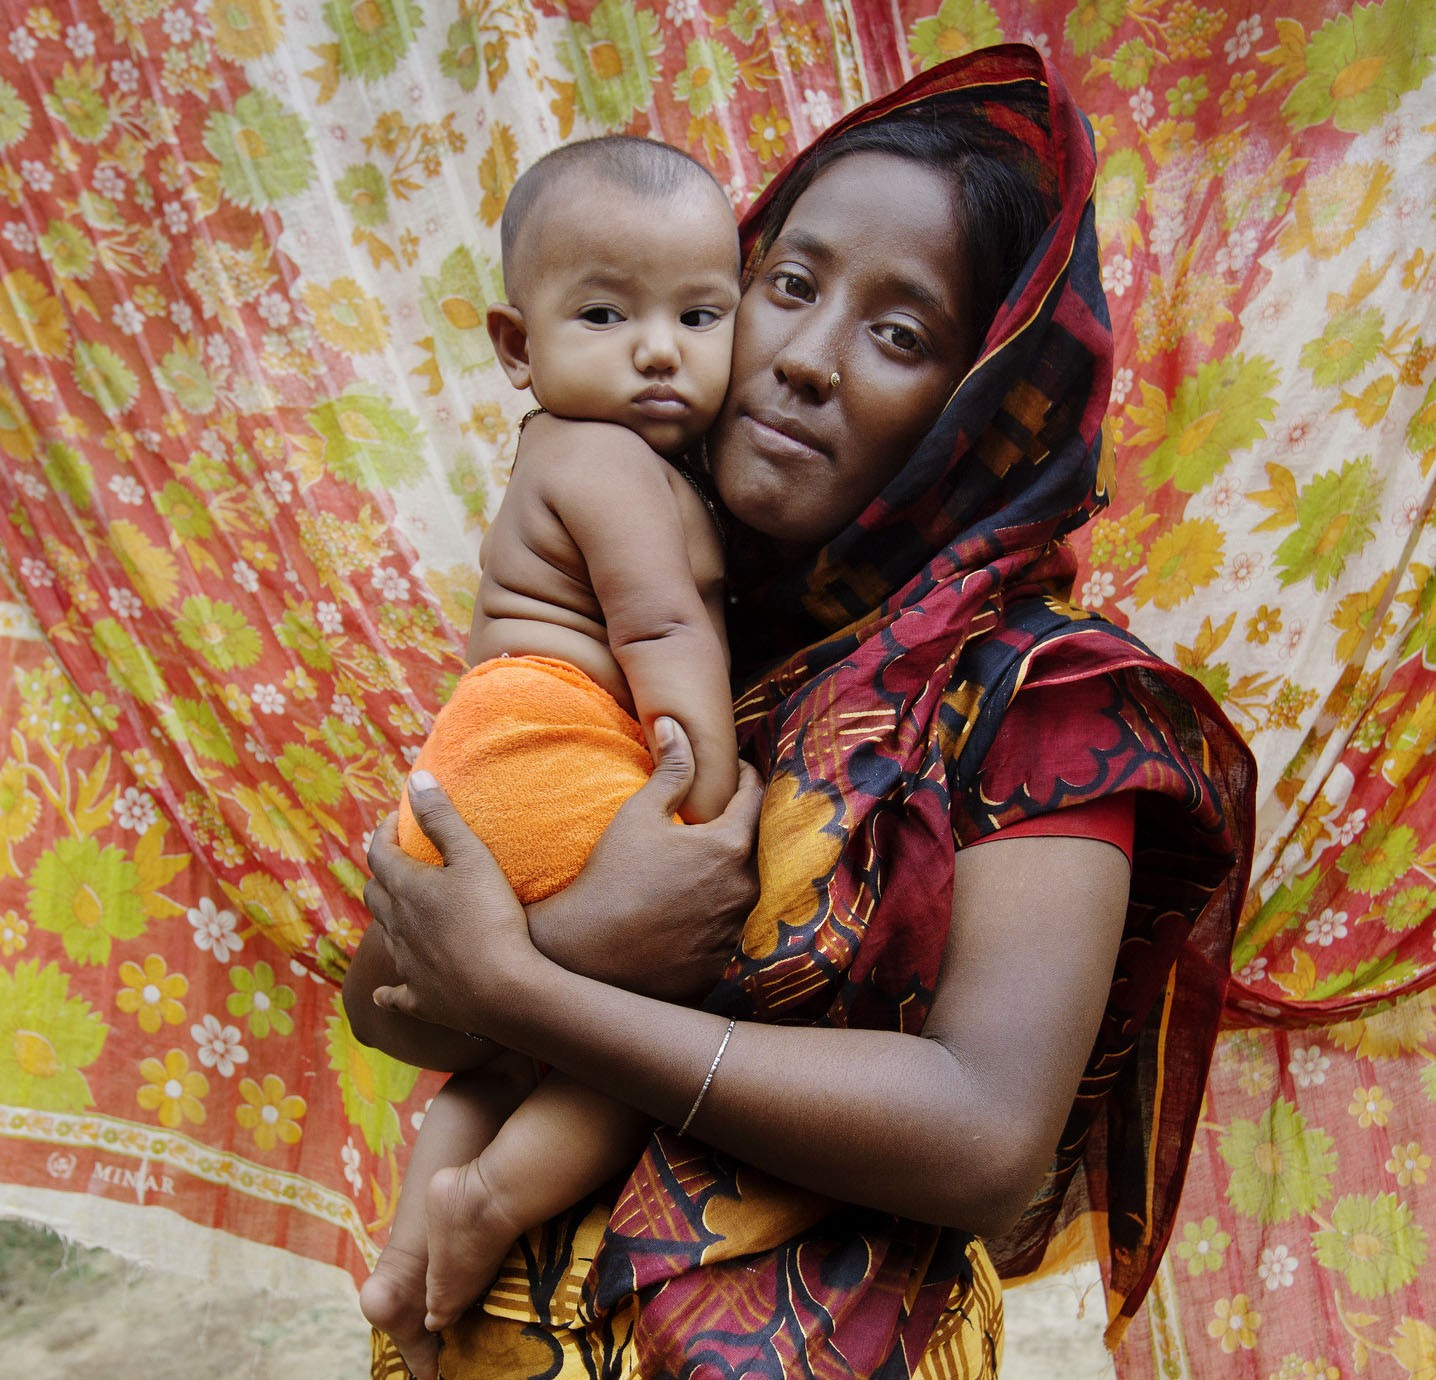 Sadia, marriage at 14 - With baby in arms